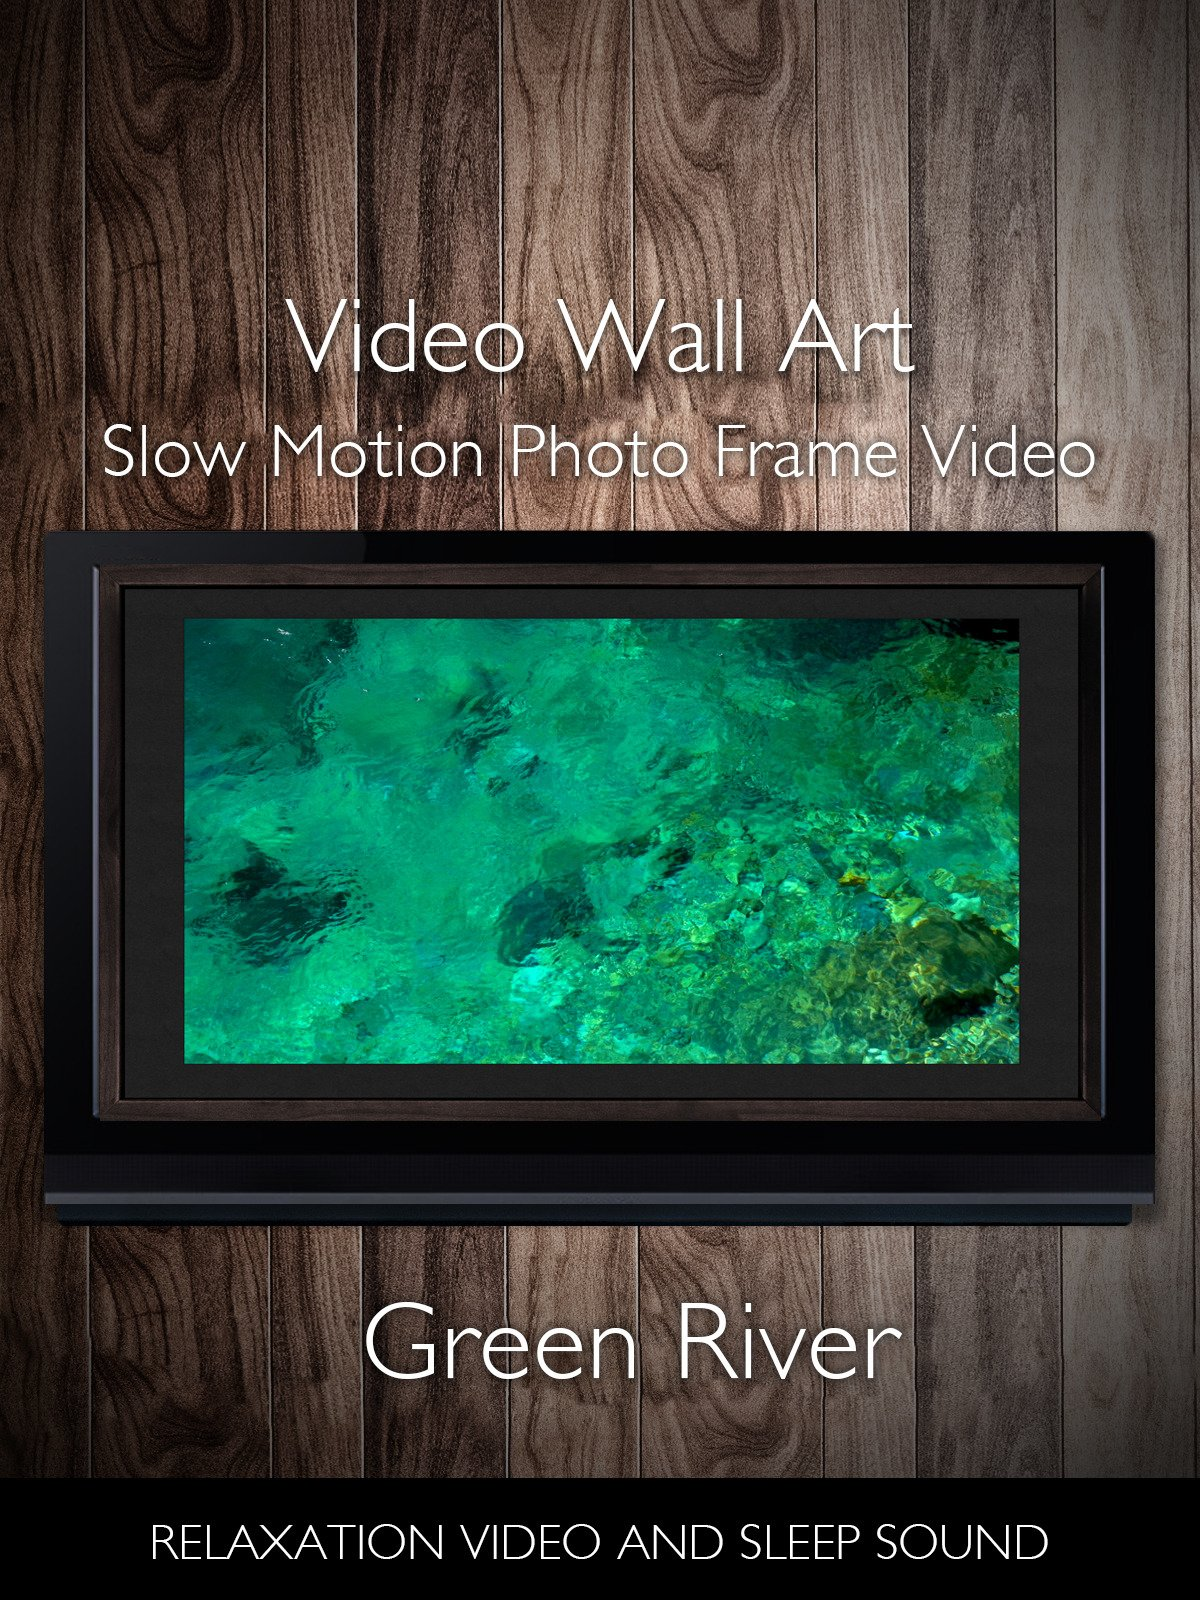 Video Wall Art Slow Motion Green River Photo Frame Video Relaxation Video and Sleep Sound